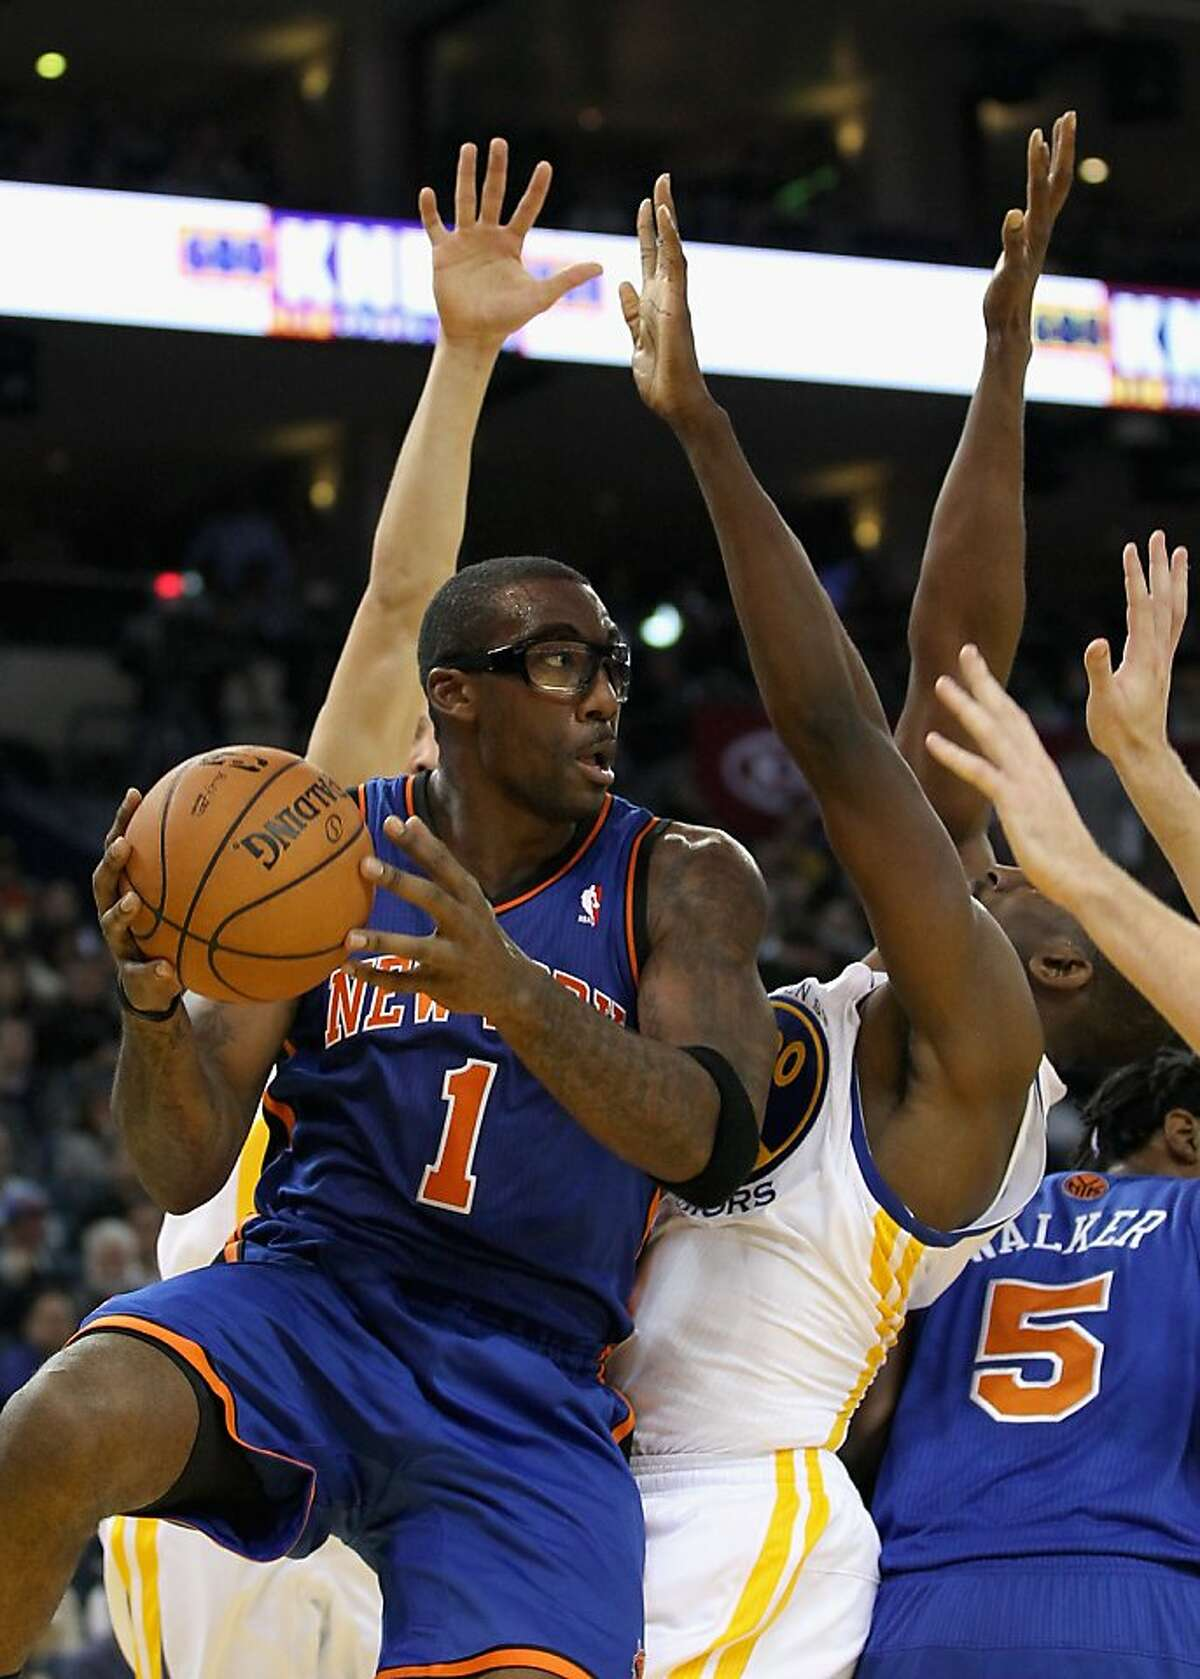 OAKLAND, CA - DECEMBER 28: Amare Stoudemire #1 of the New York Knicks looks to pass during their game against the Golden State Warriors at Oracle Arena on December 28, 2011 in Oakland, California. NOTE TO USER: User expressly acknowledges and agrees that, by downloading and or using this photograph, User is consenting to the terms and conditions of the Getty Images License Agreement. (Photo by Ezra Shaw/Getty Images)